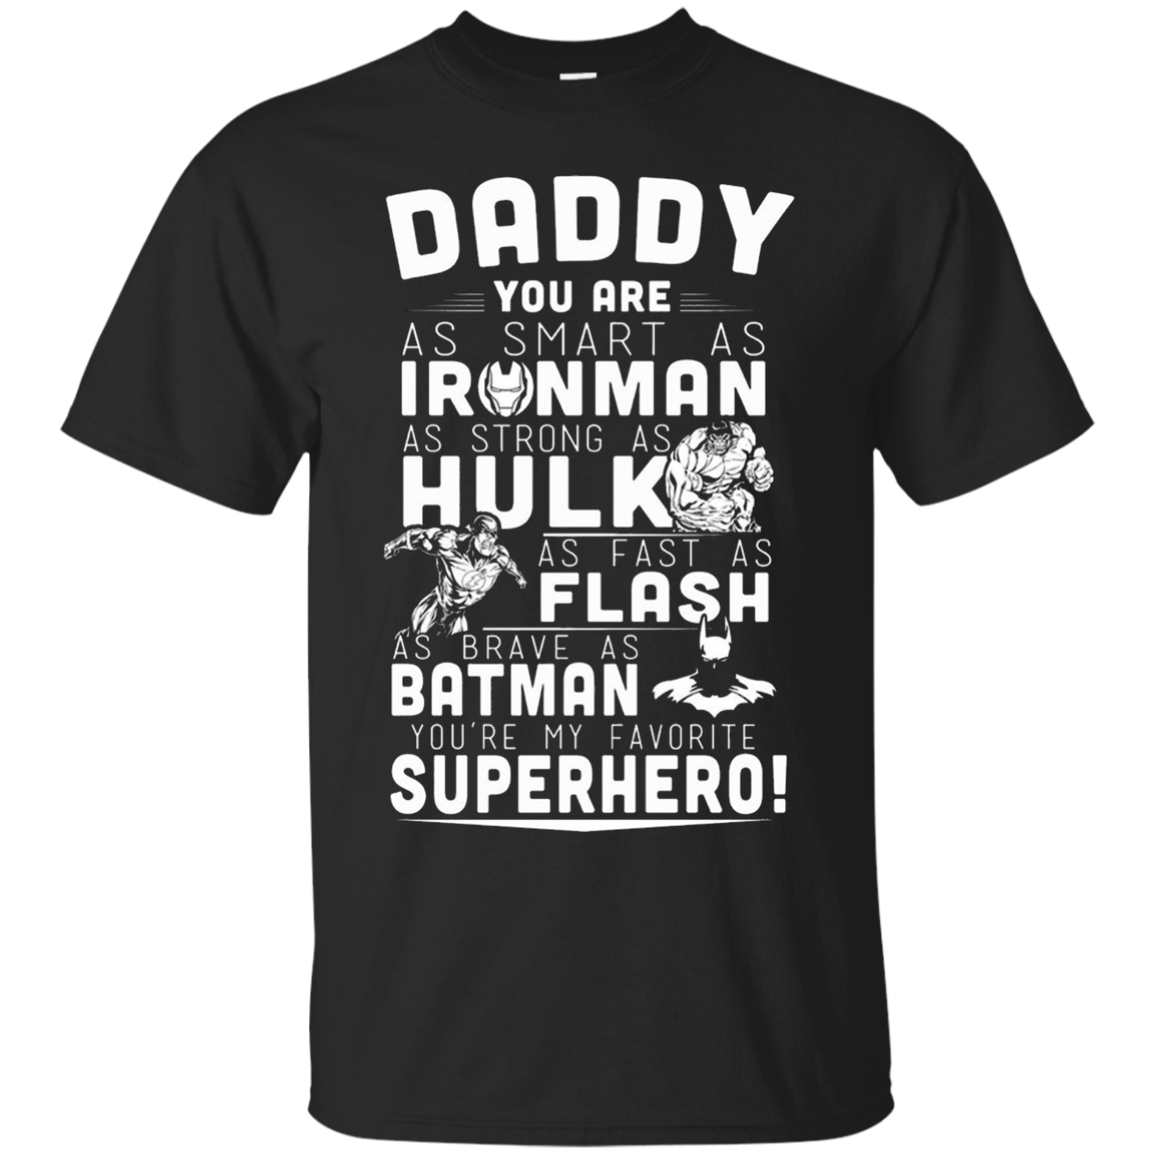 Daddy - You Are My Super Hero T shirt